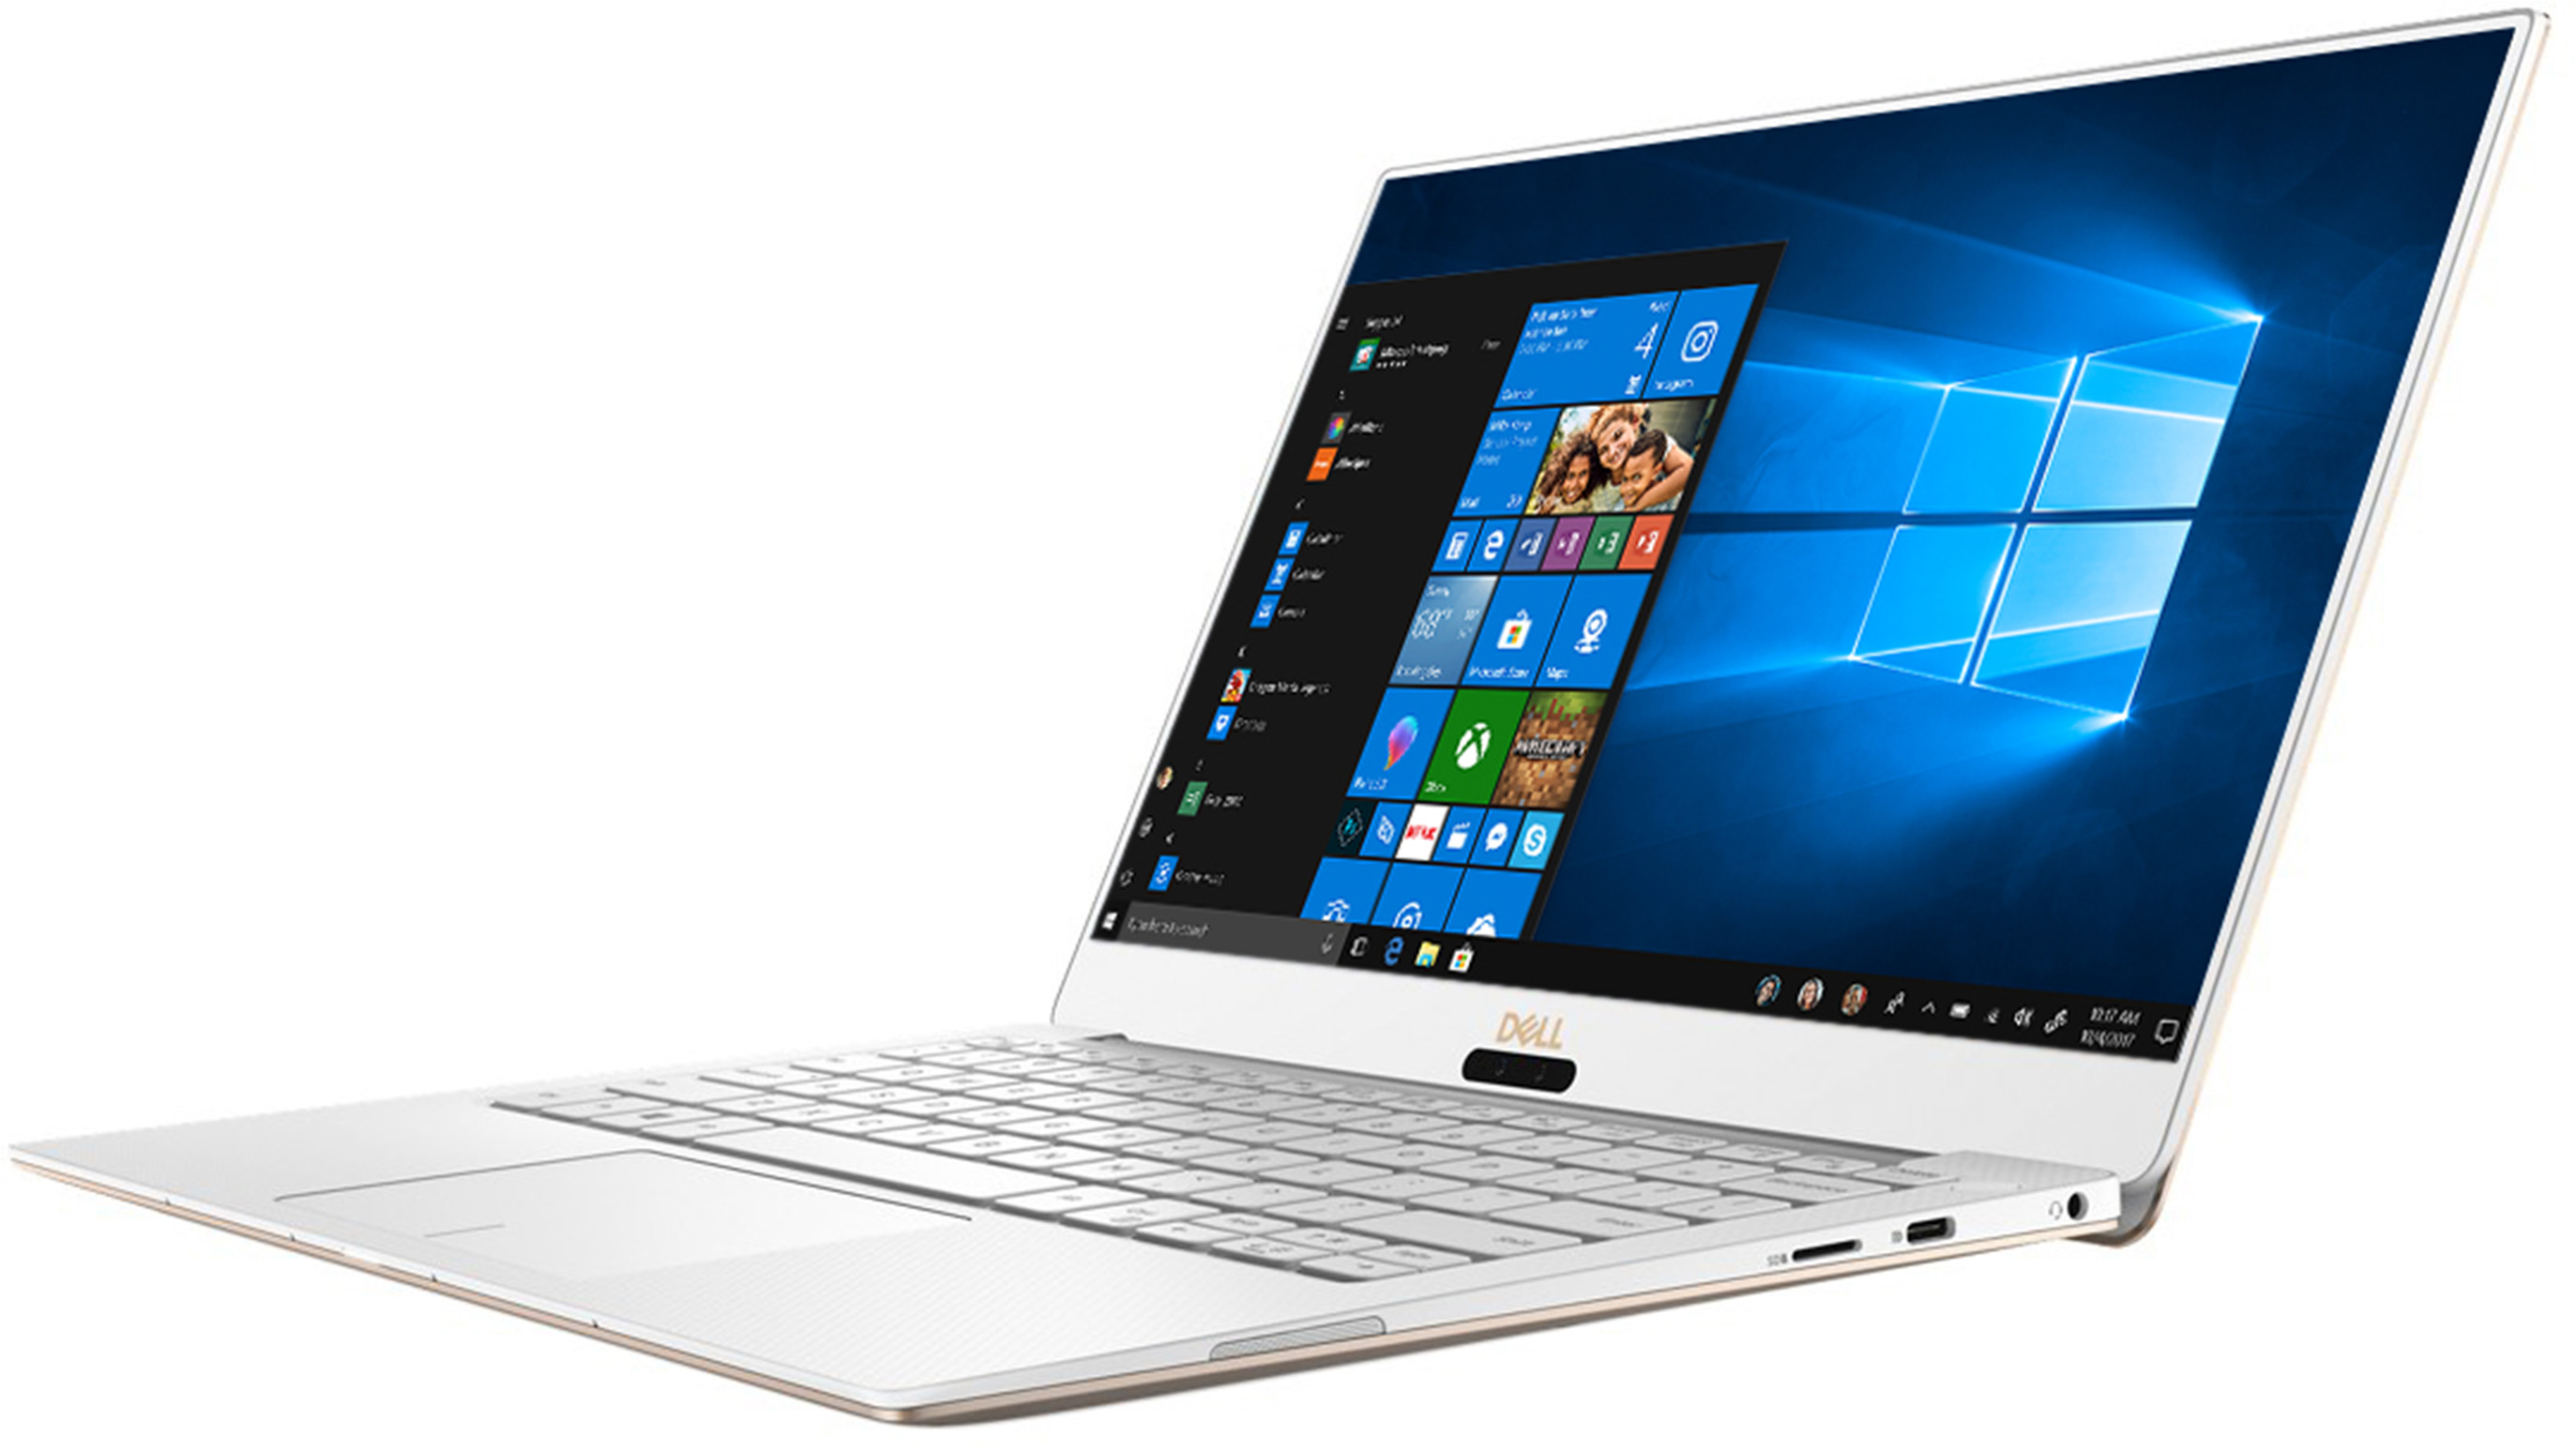 3c036d86c33 Buy the Dell XPS 13 touchscreen - Microsoft